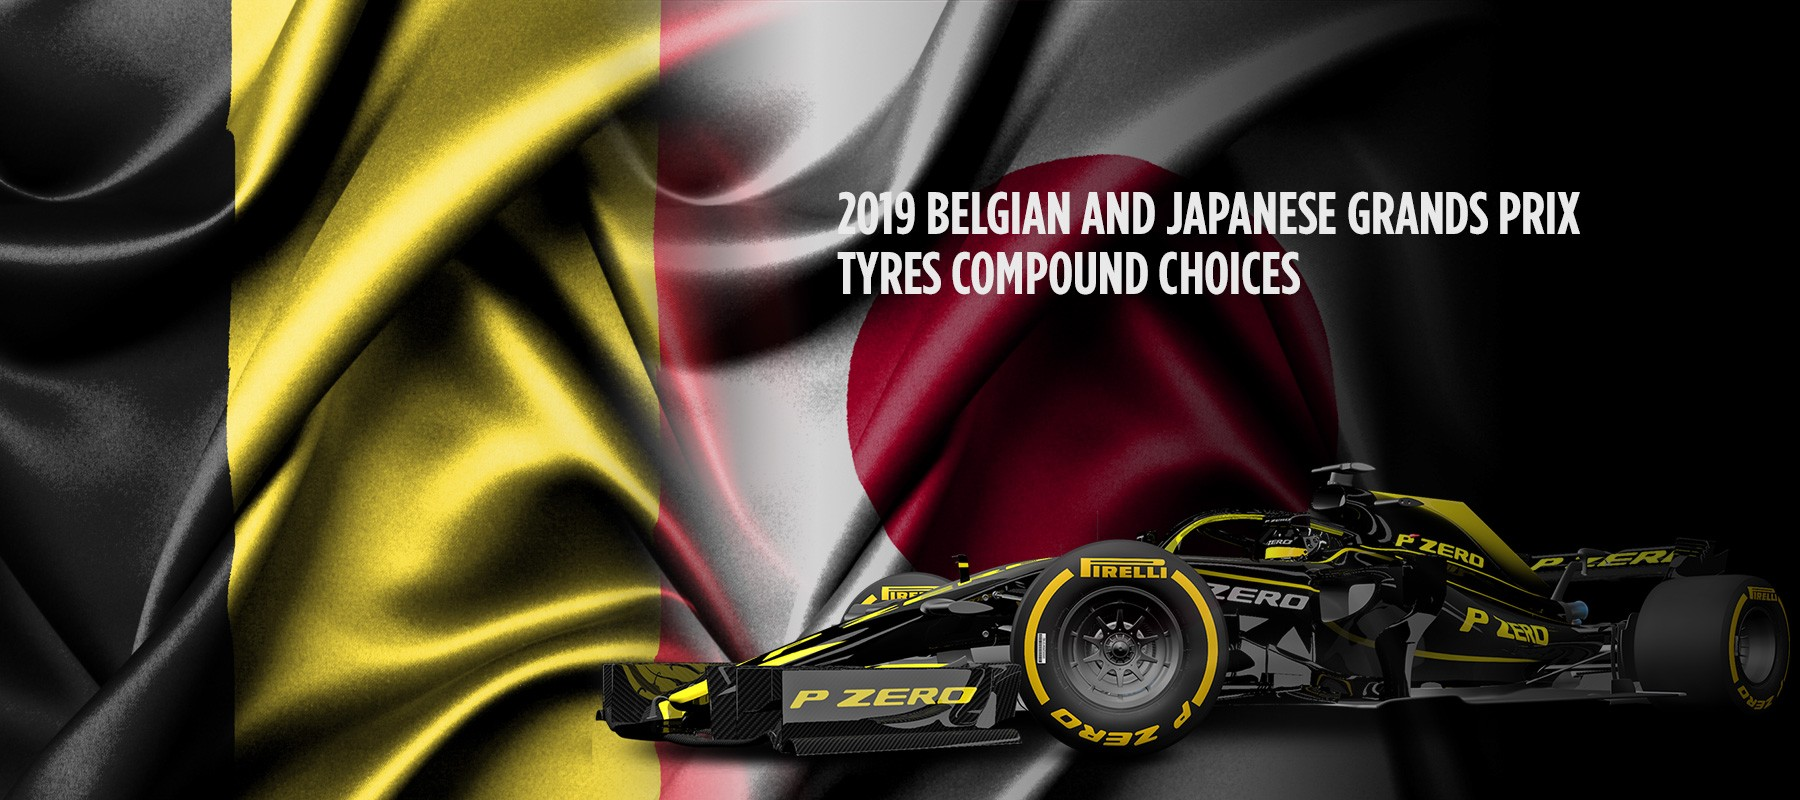 2019 Belgian and Japanese Grands Prix – Tyre compound choices